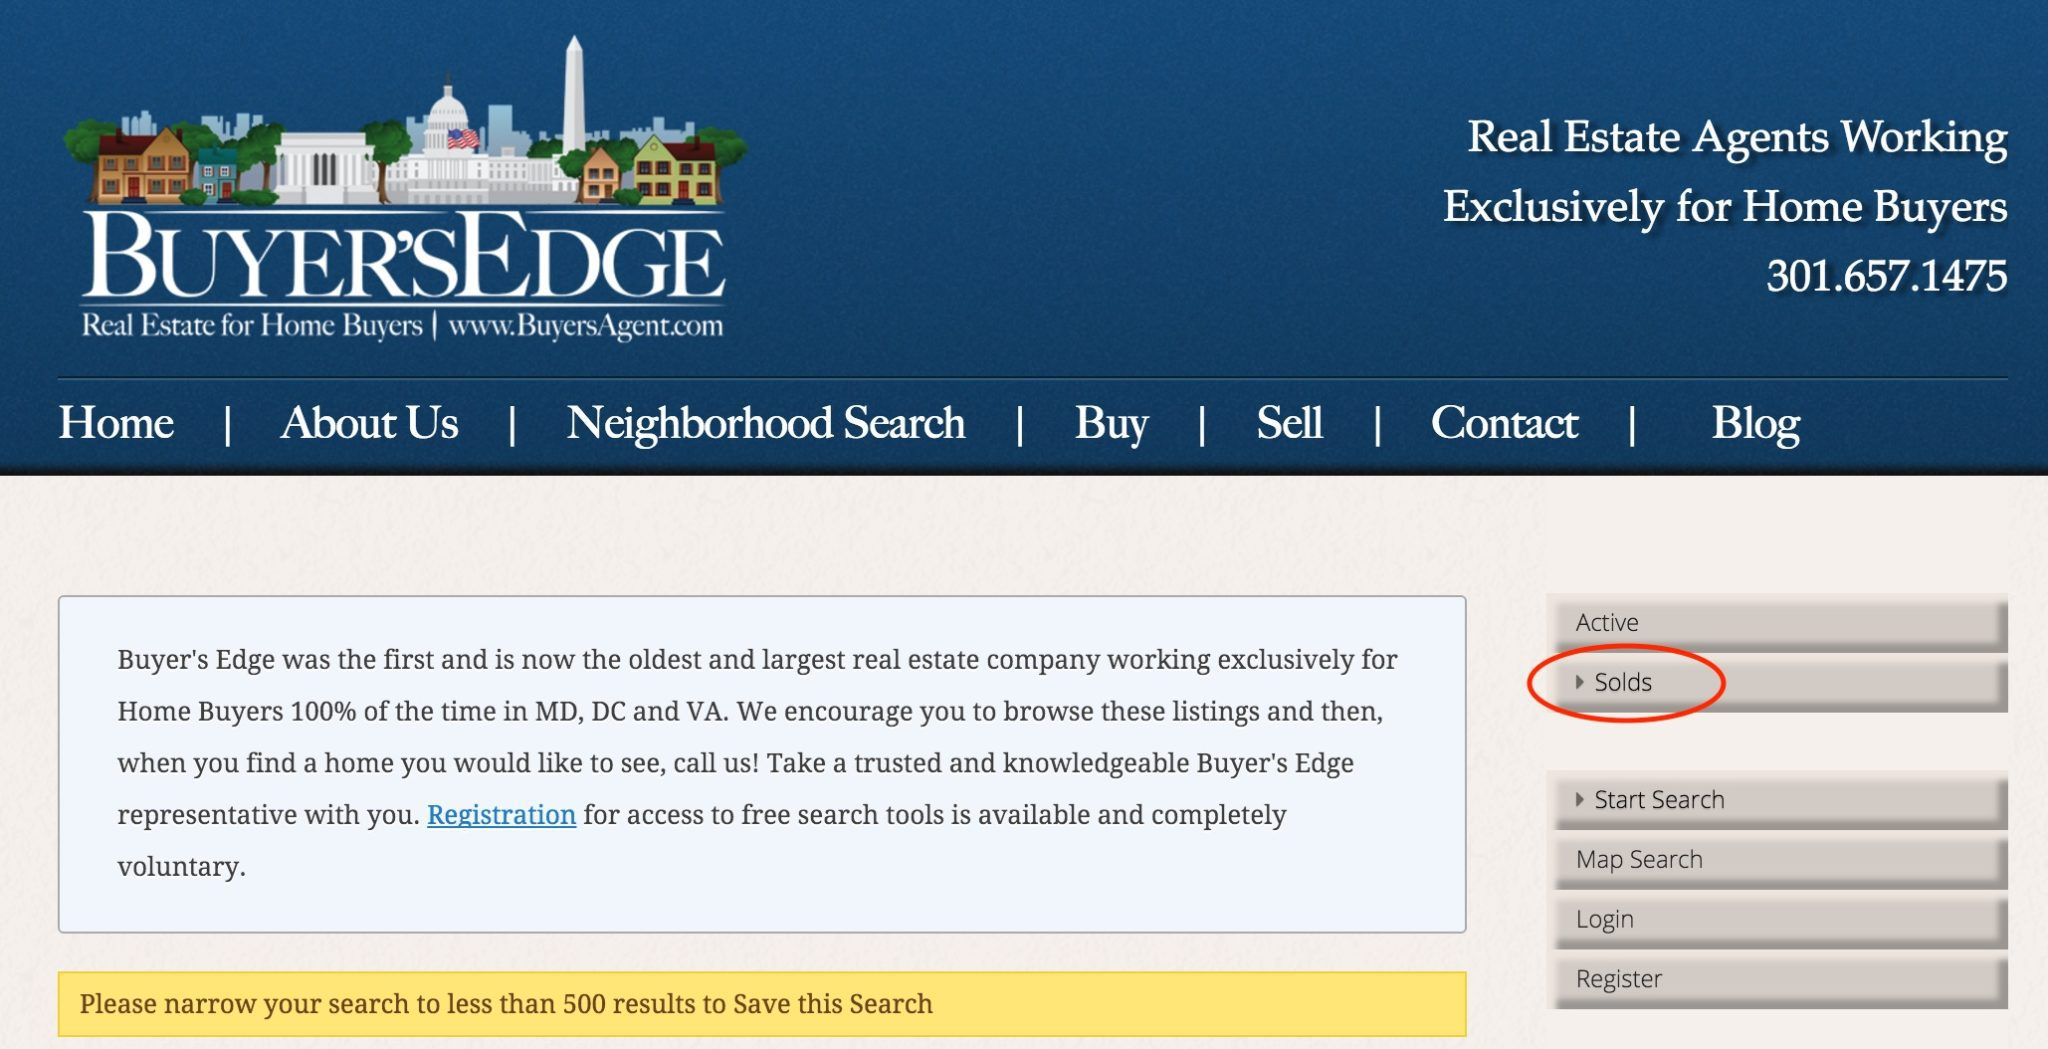 A screenshot showing the new Buyer's Edge website functionality